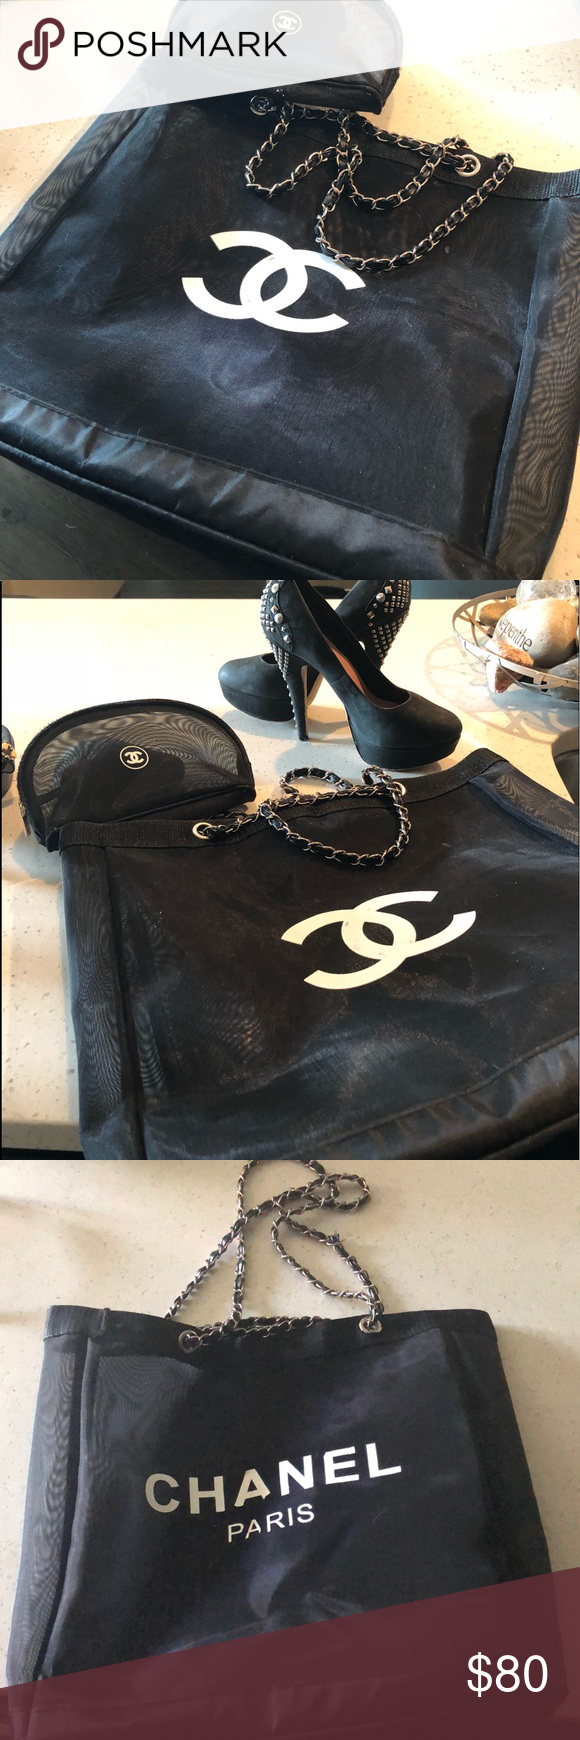 Chanel Canvas Tote chain handle and new makeup bag Black